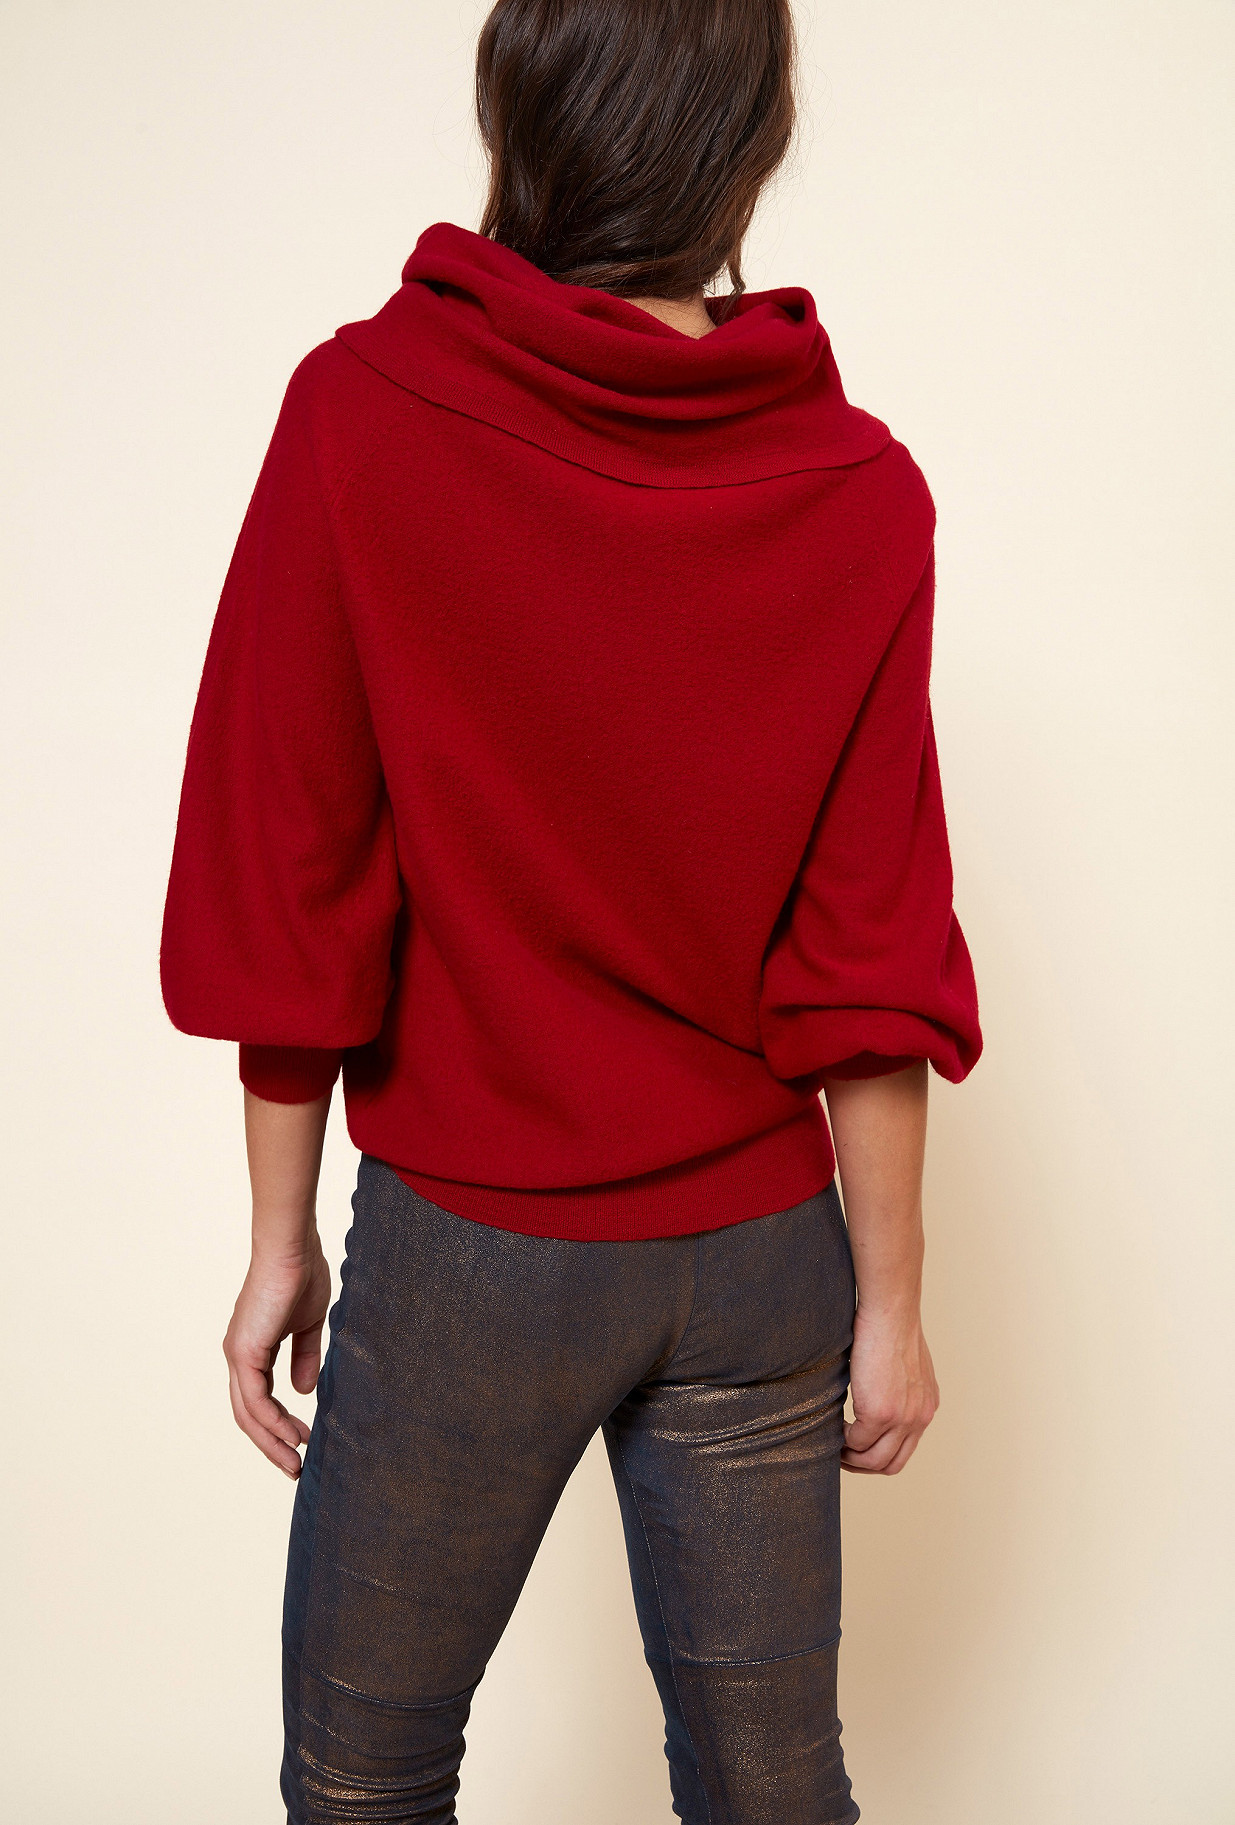 Maille Rouge Sonate